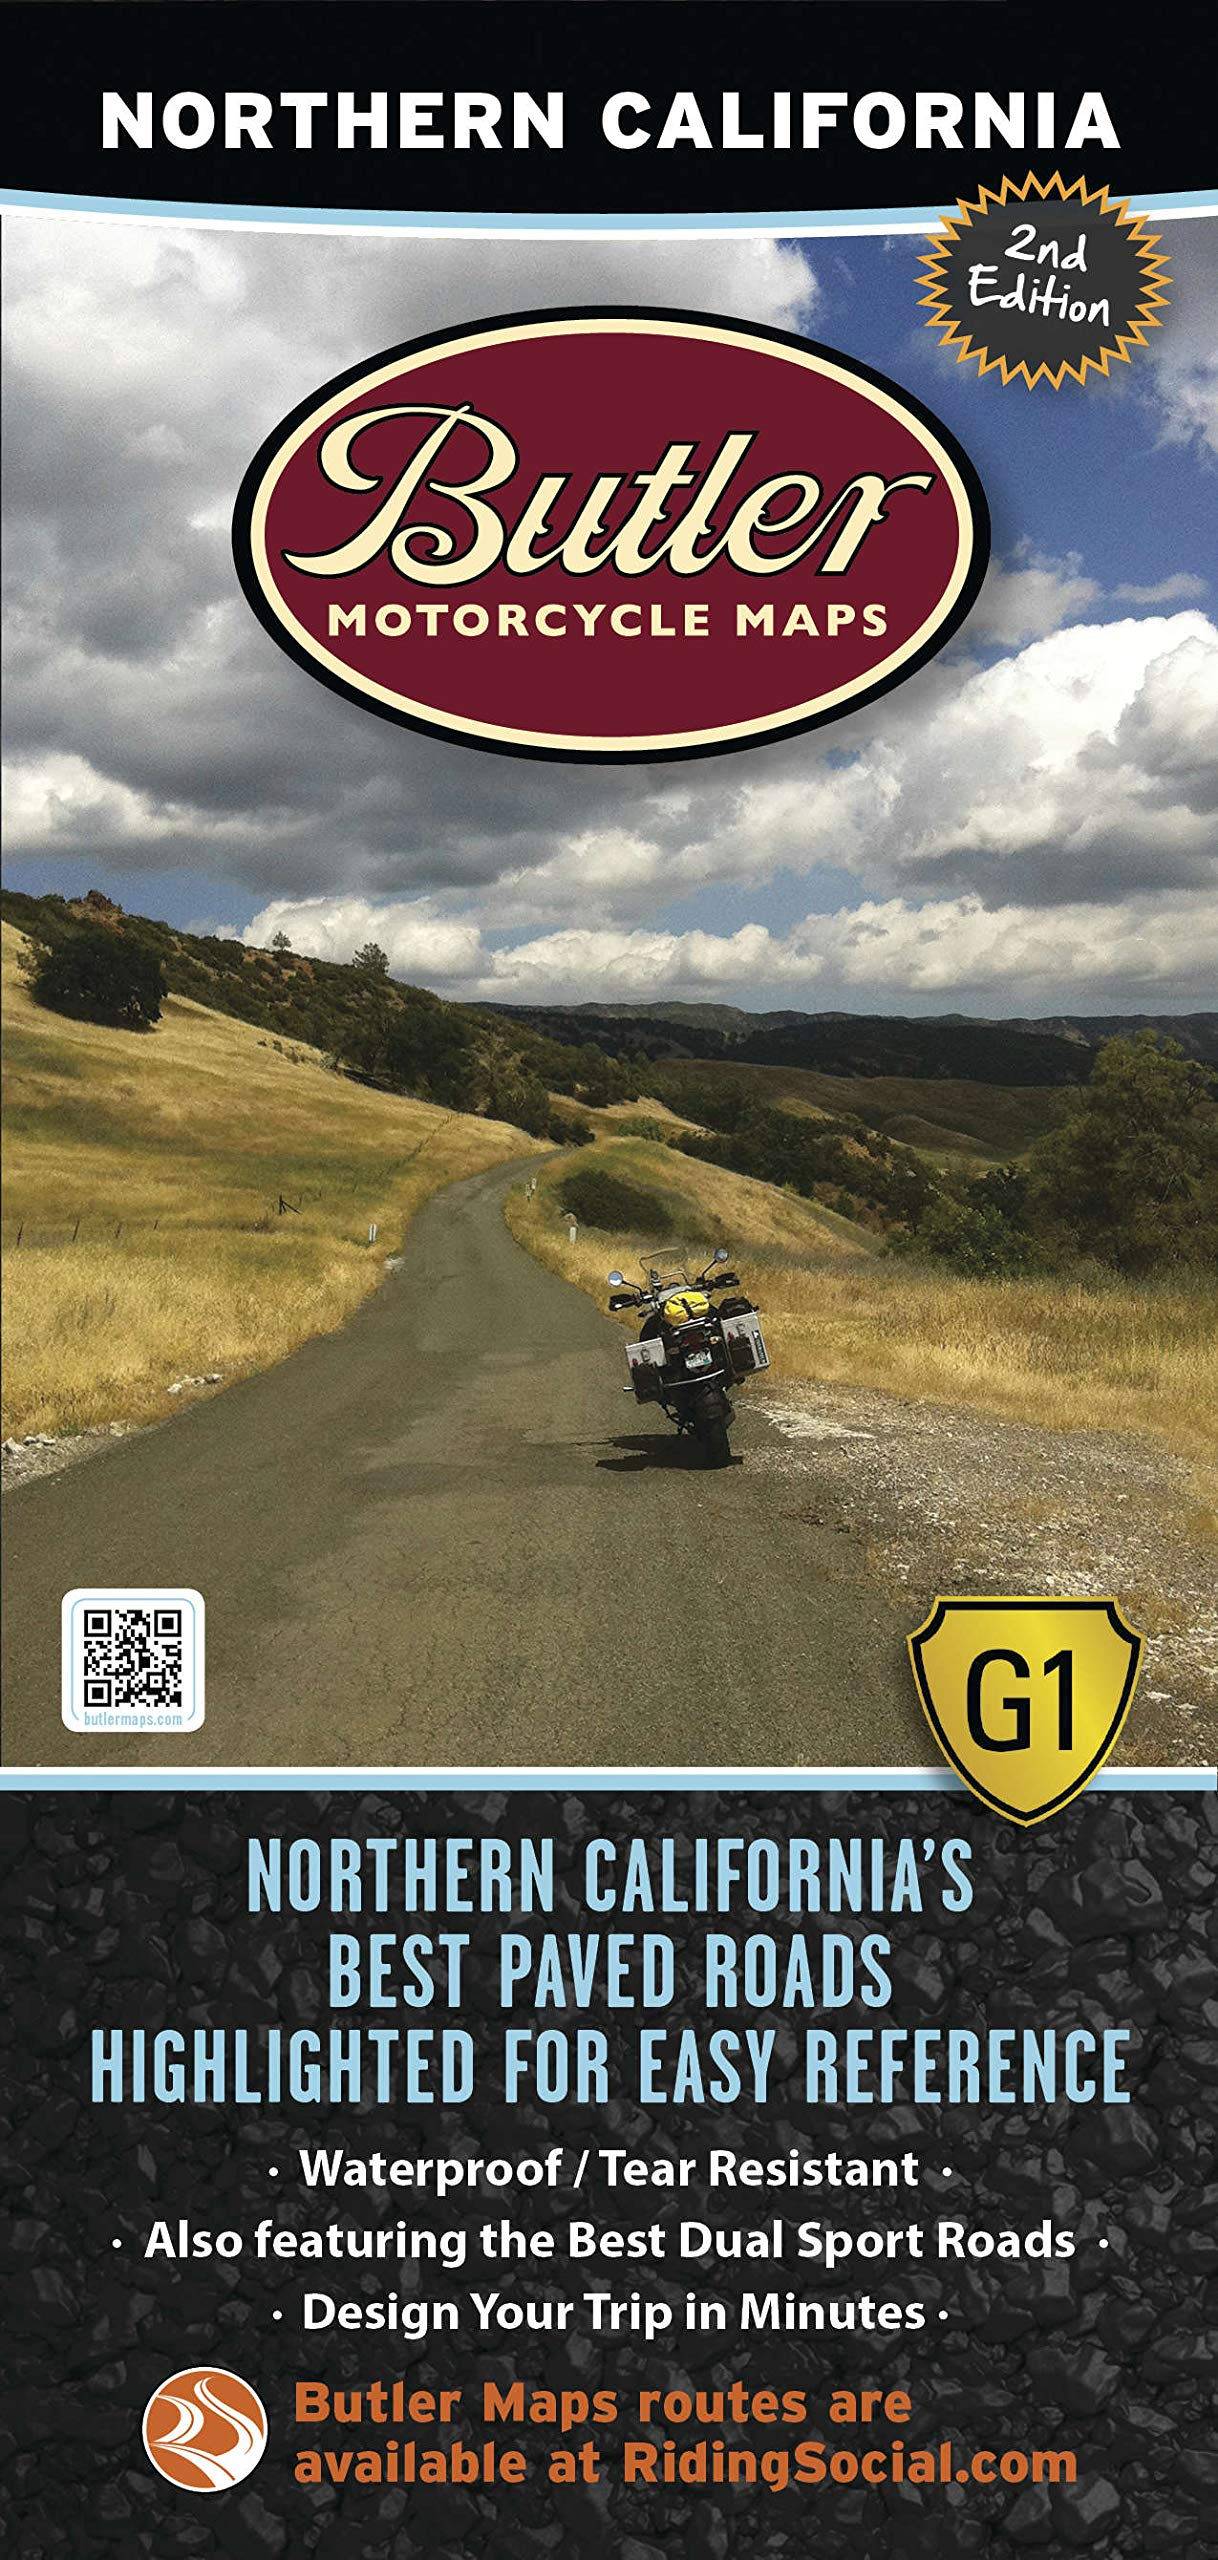 Amazon.com: Butler Maps Northern California Map: Butler Motorcycle on